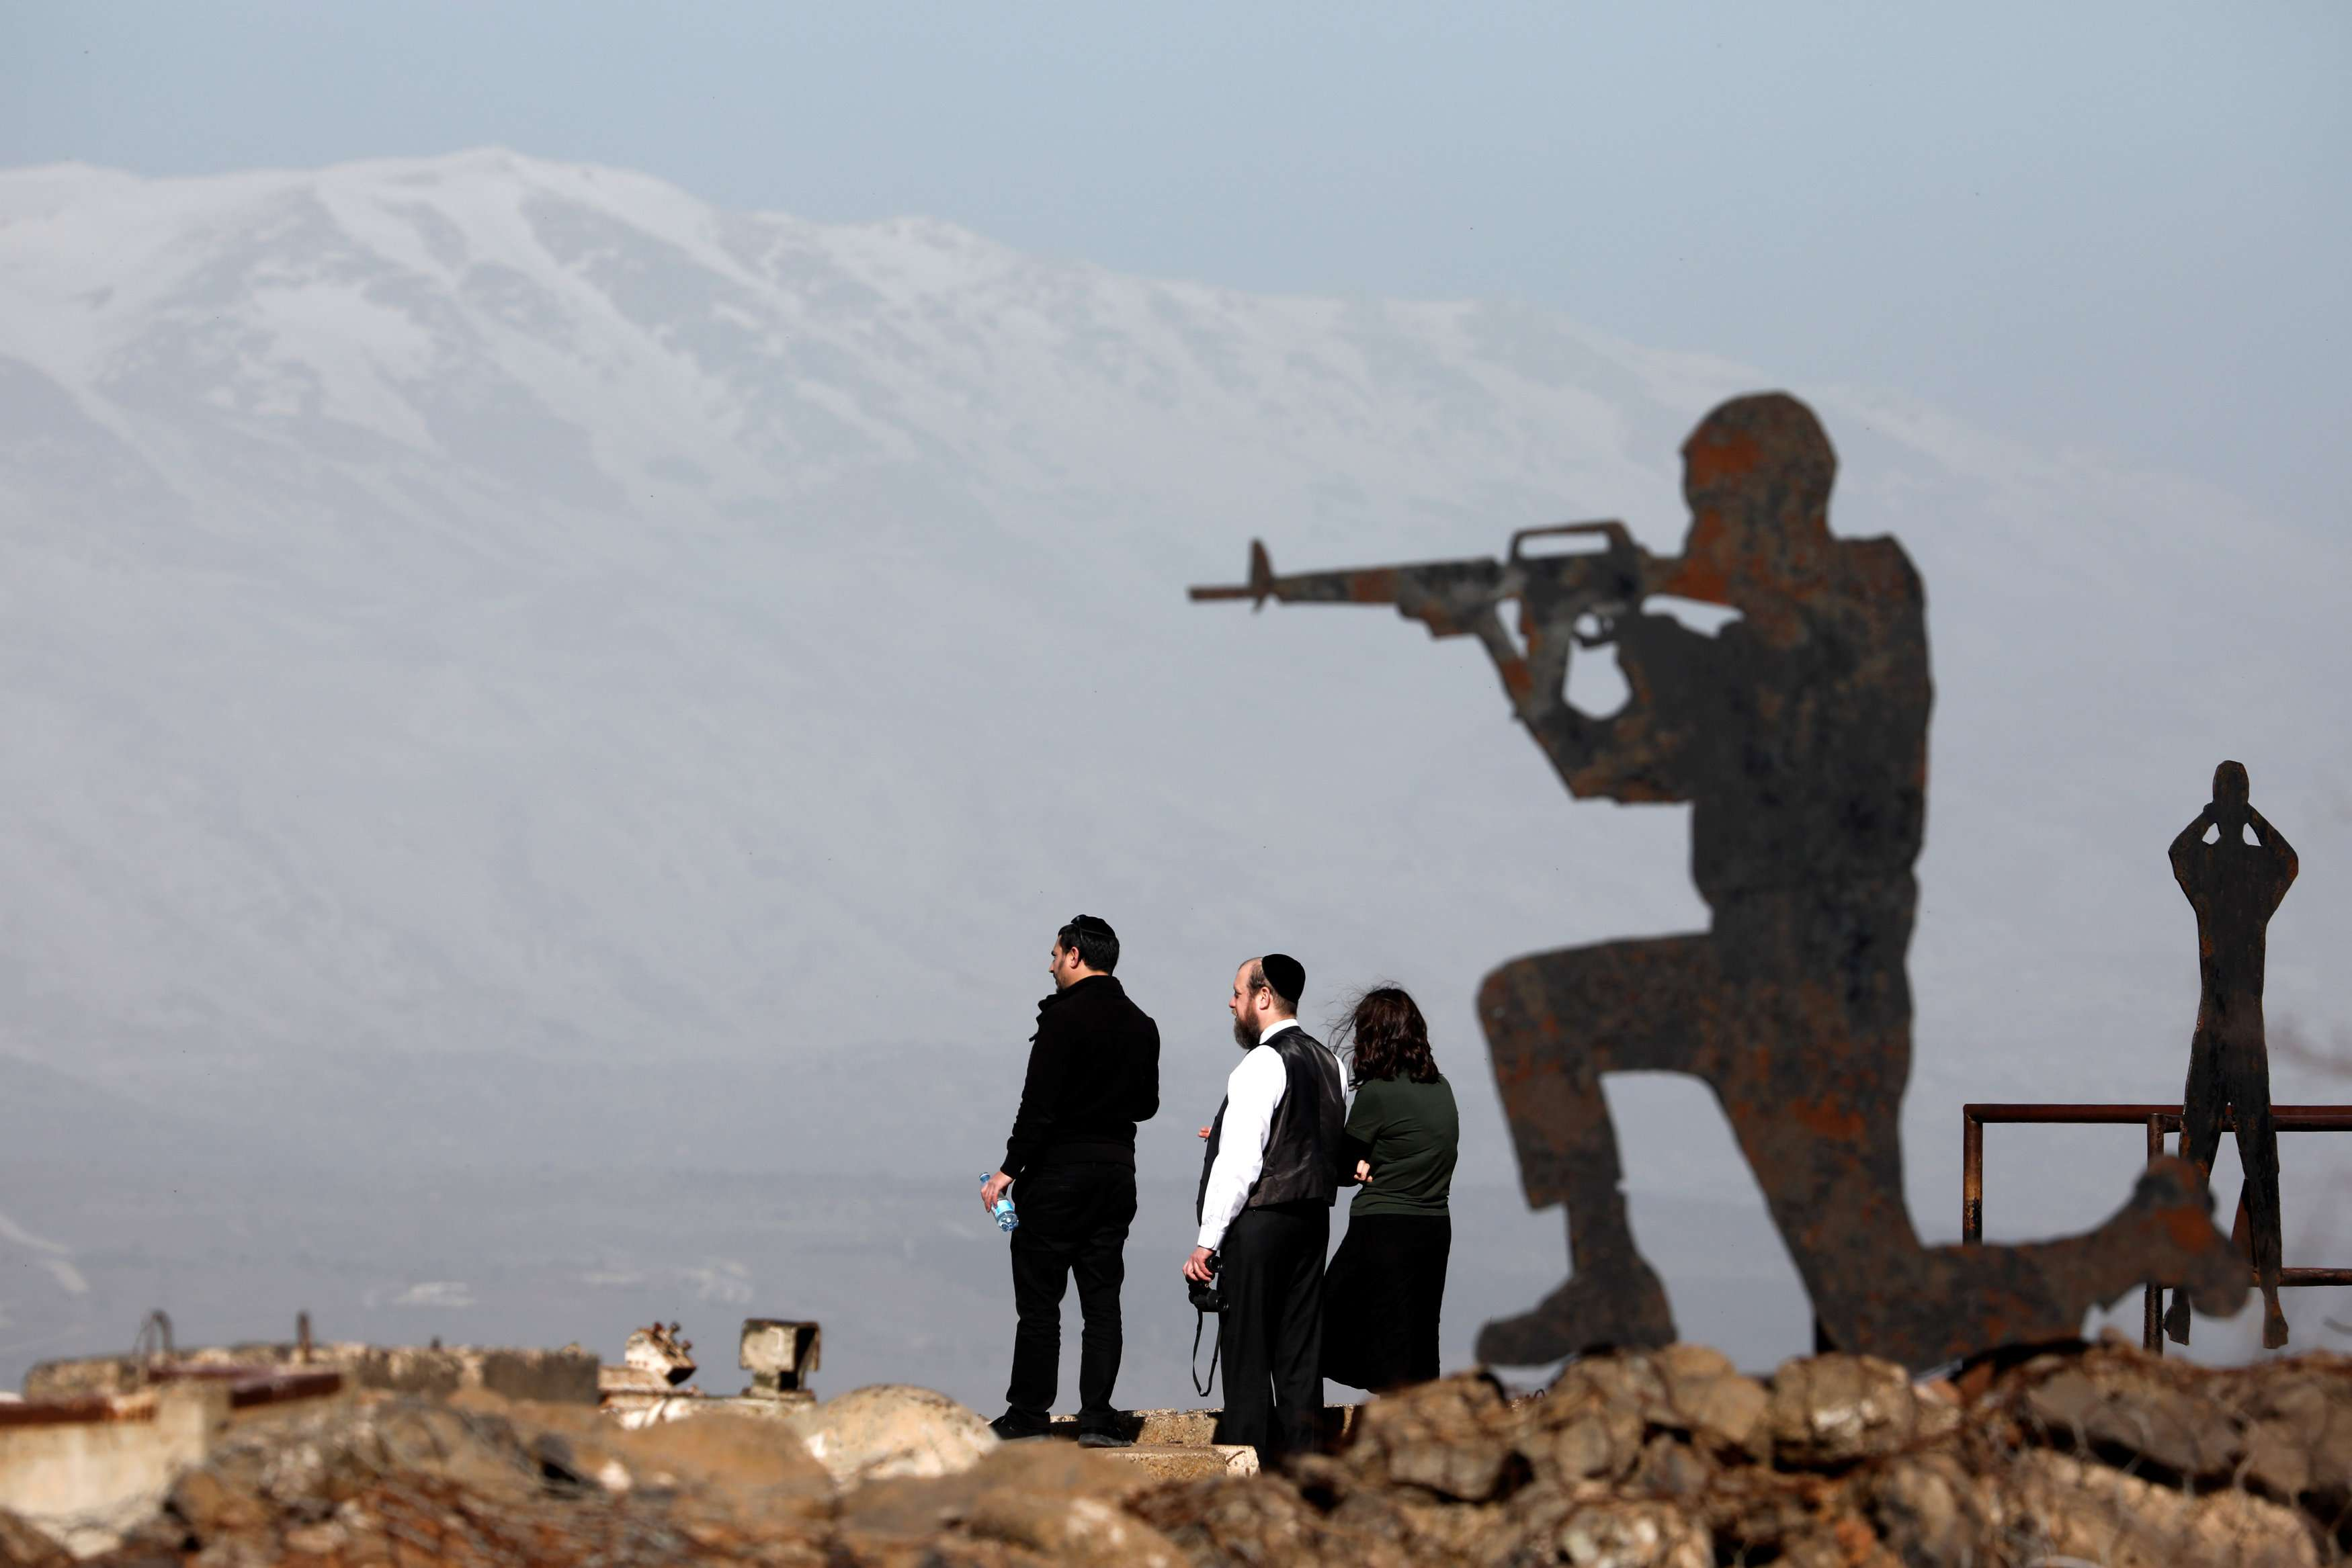 People stand next to metal sculptures at Mount Bental, an observation post in the Israeli-occupied Golan Heights. (Reuters)